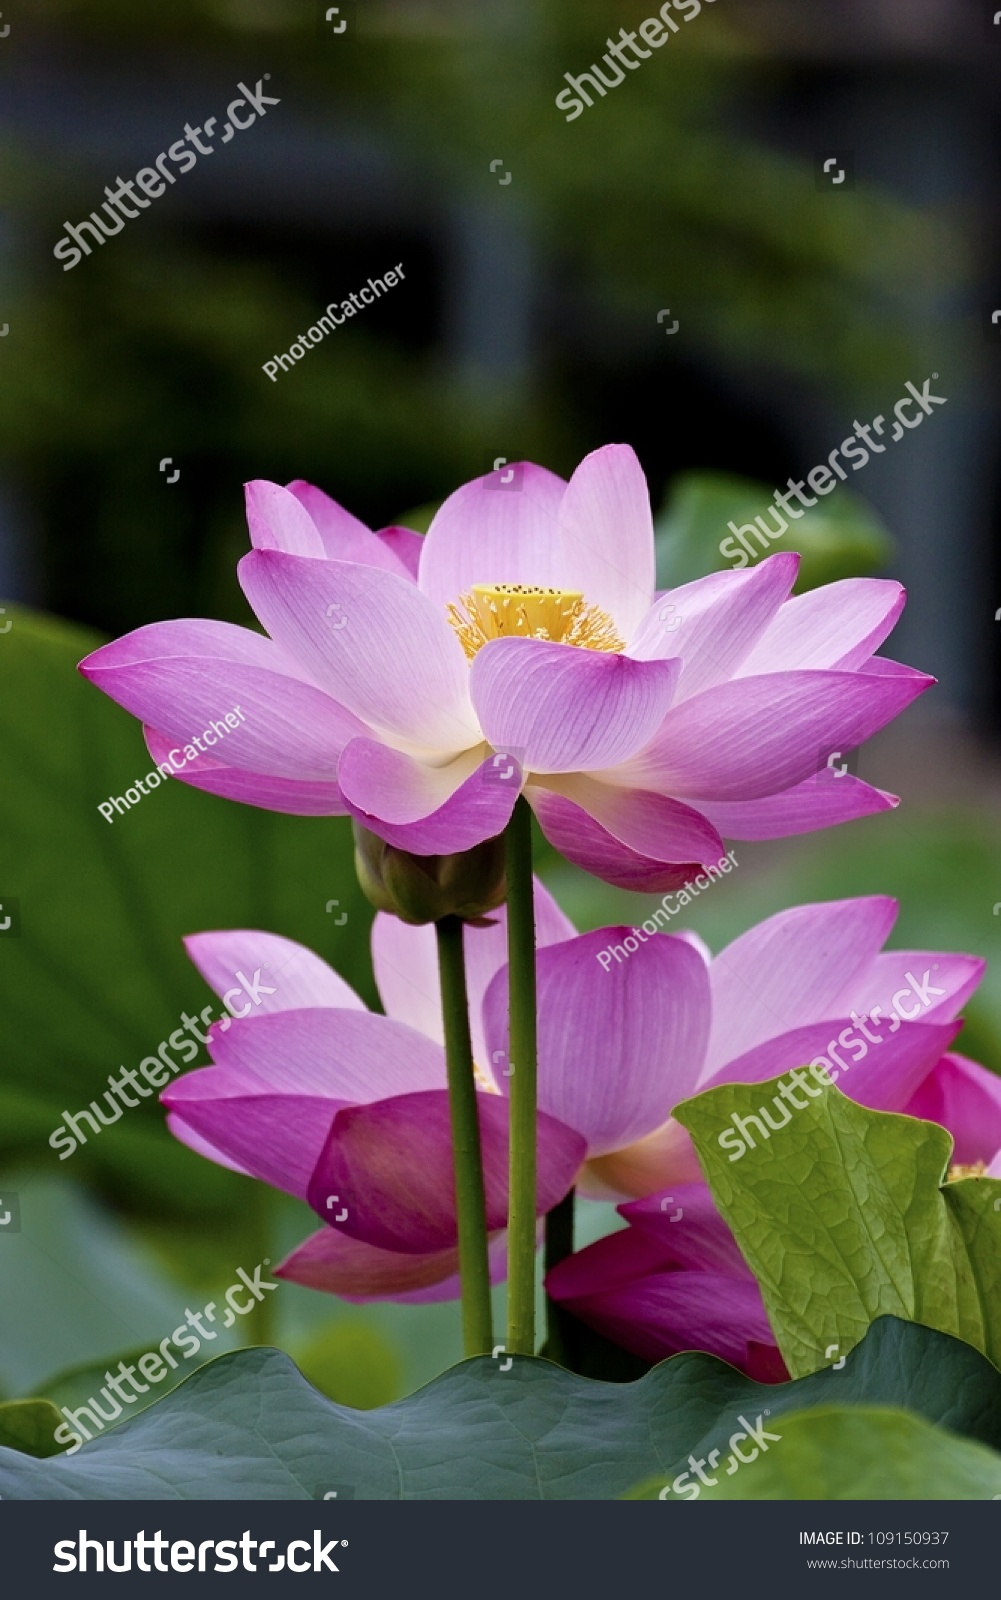 Lotus blossoms water lily flowers blooming stock photo edit now lotus blossoms or water lily flowers blooming on pond izmirmasajfo